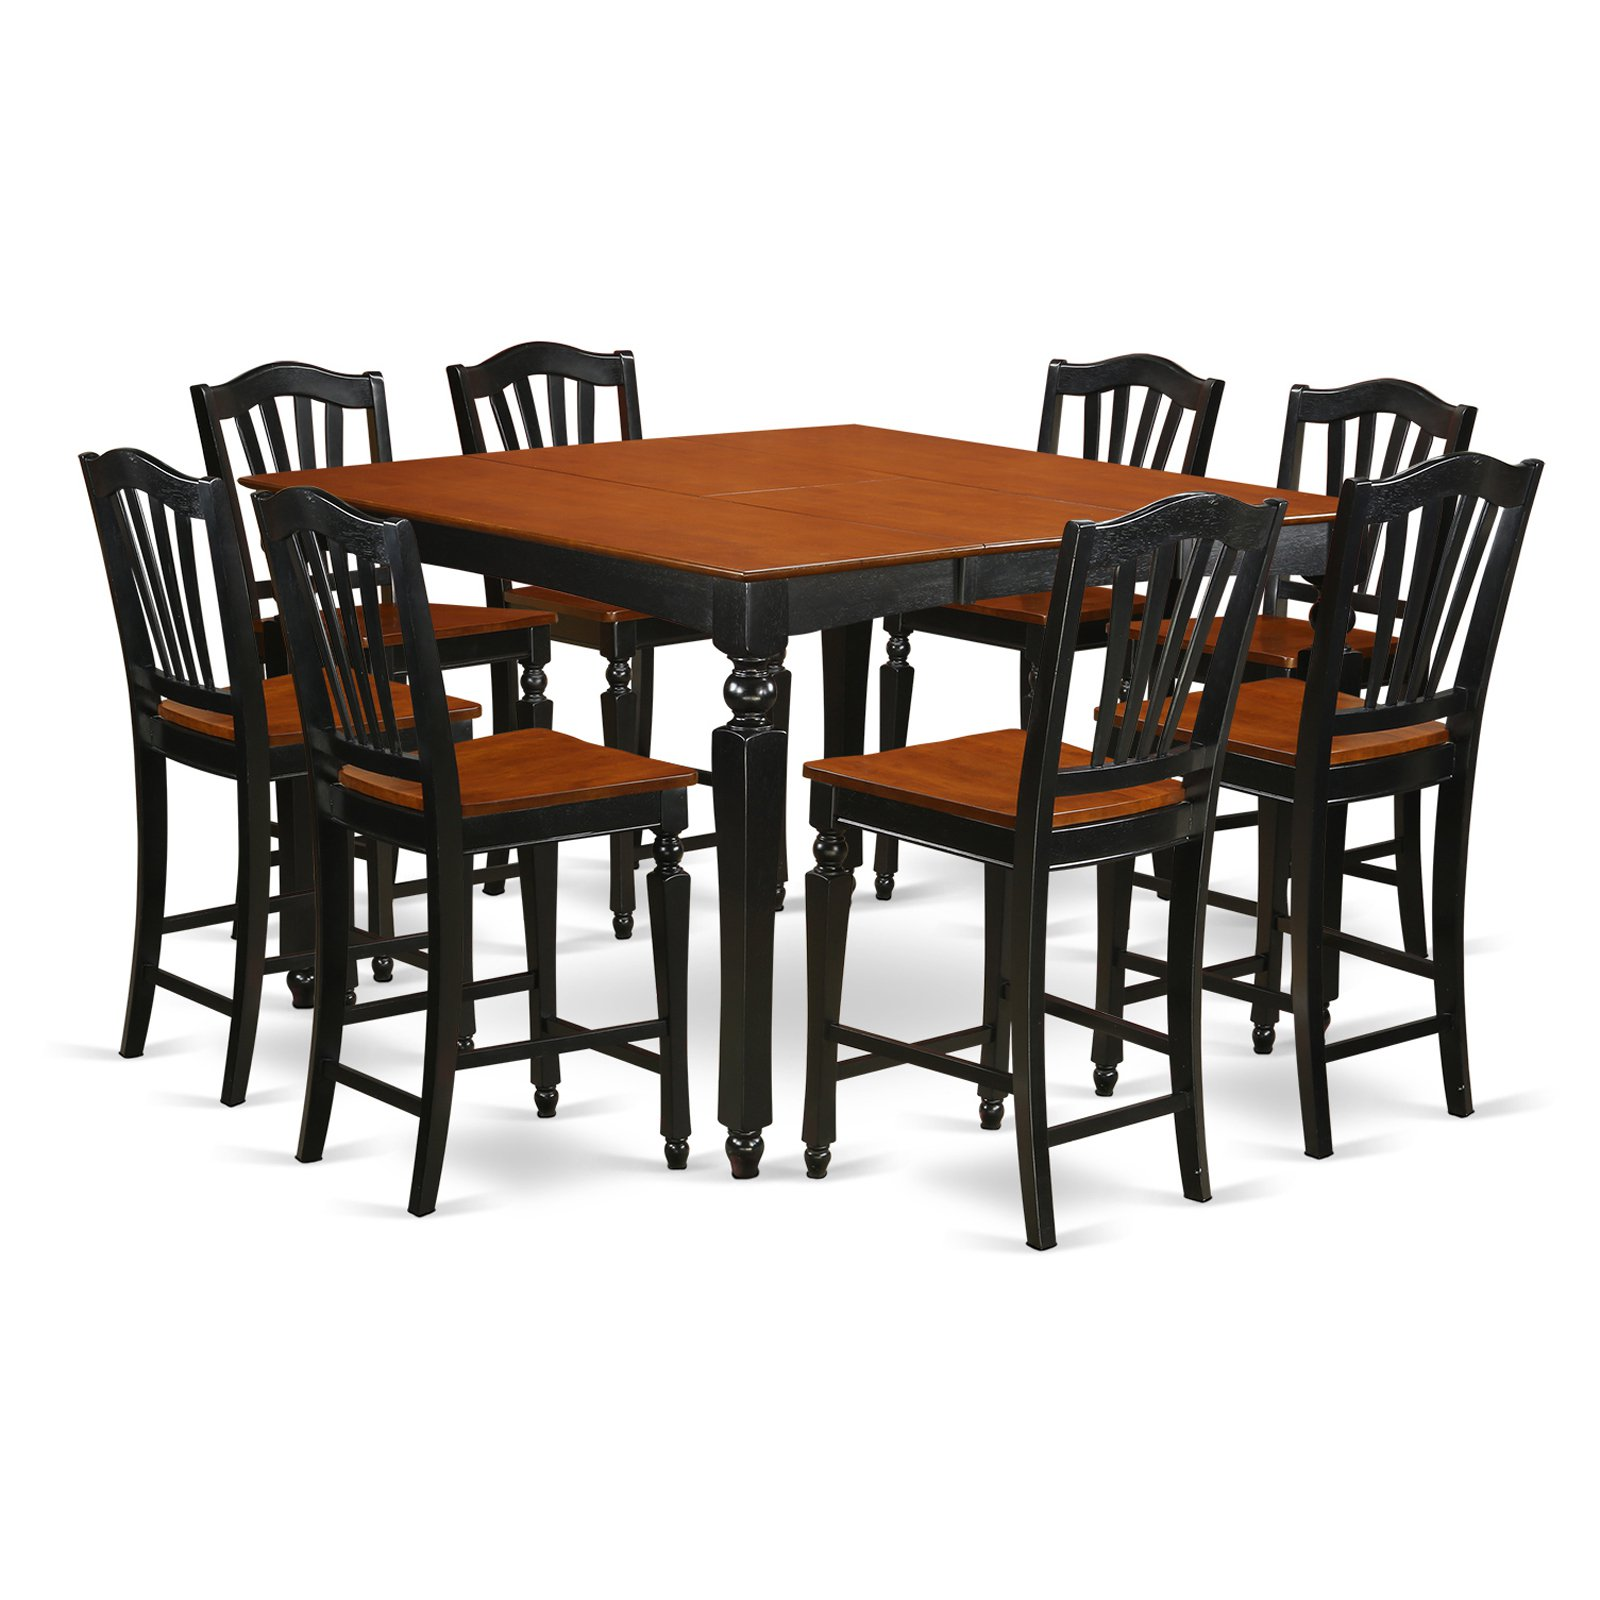 East West Furniture Chelsea 9 Piece High Splat Dining Table Set